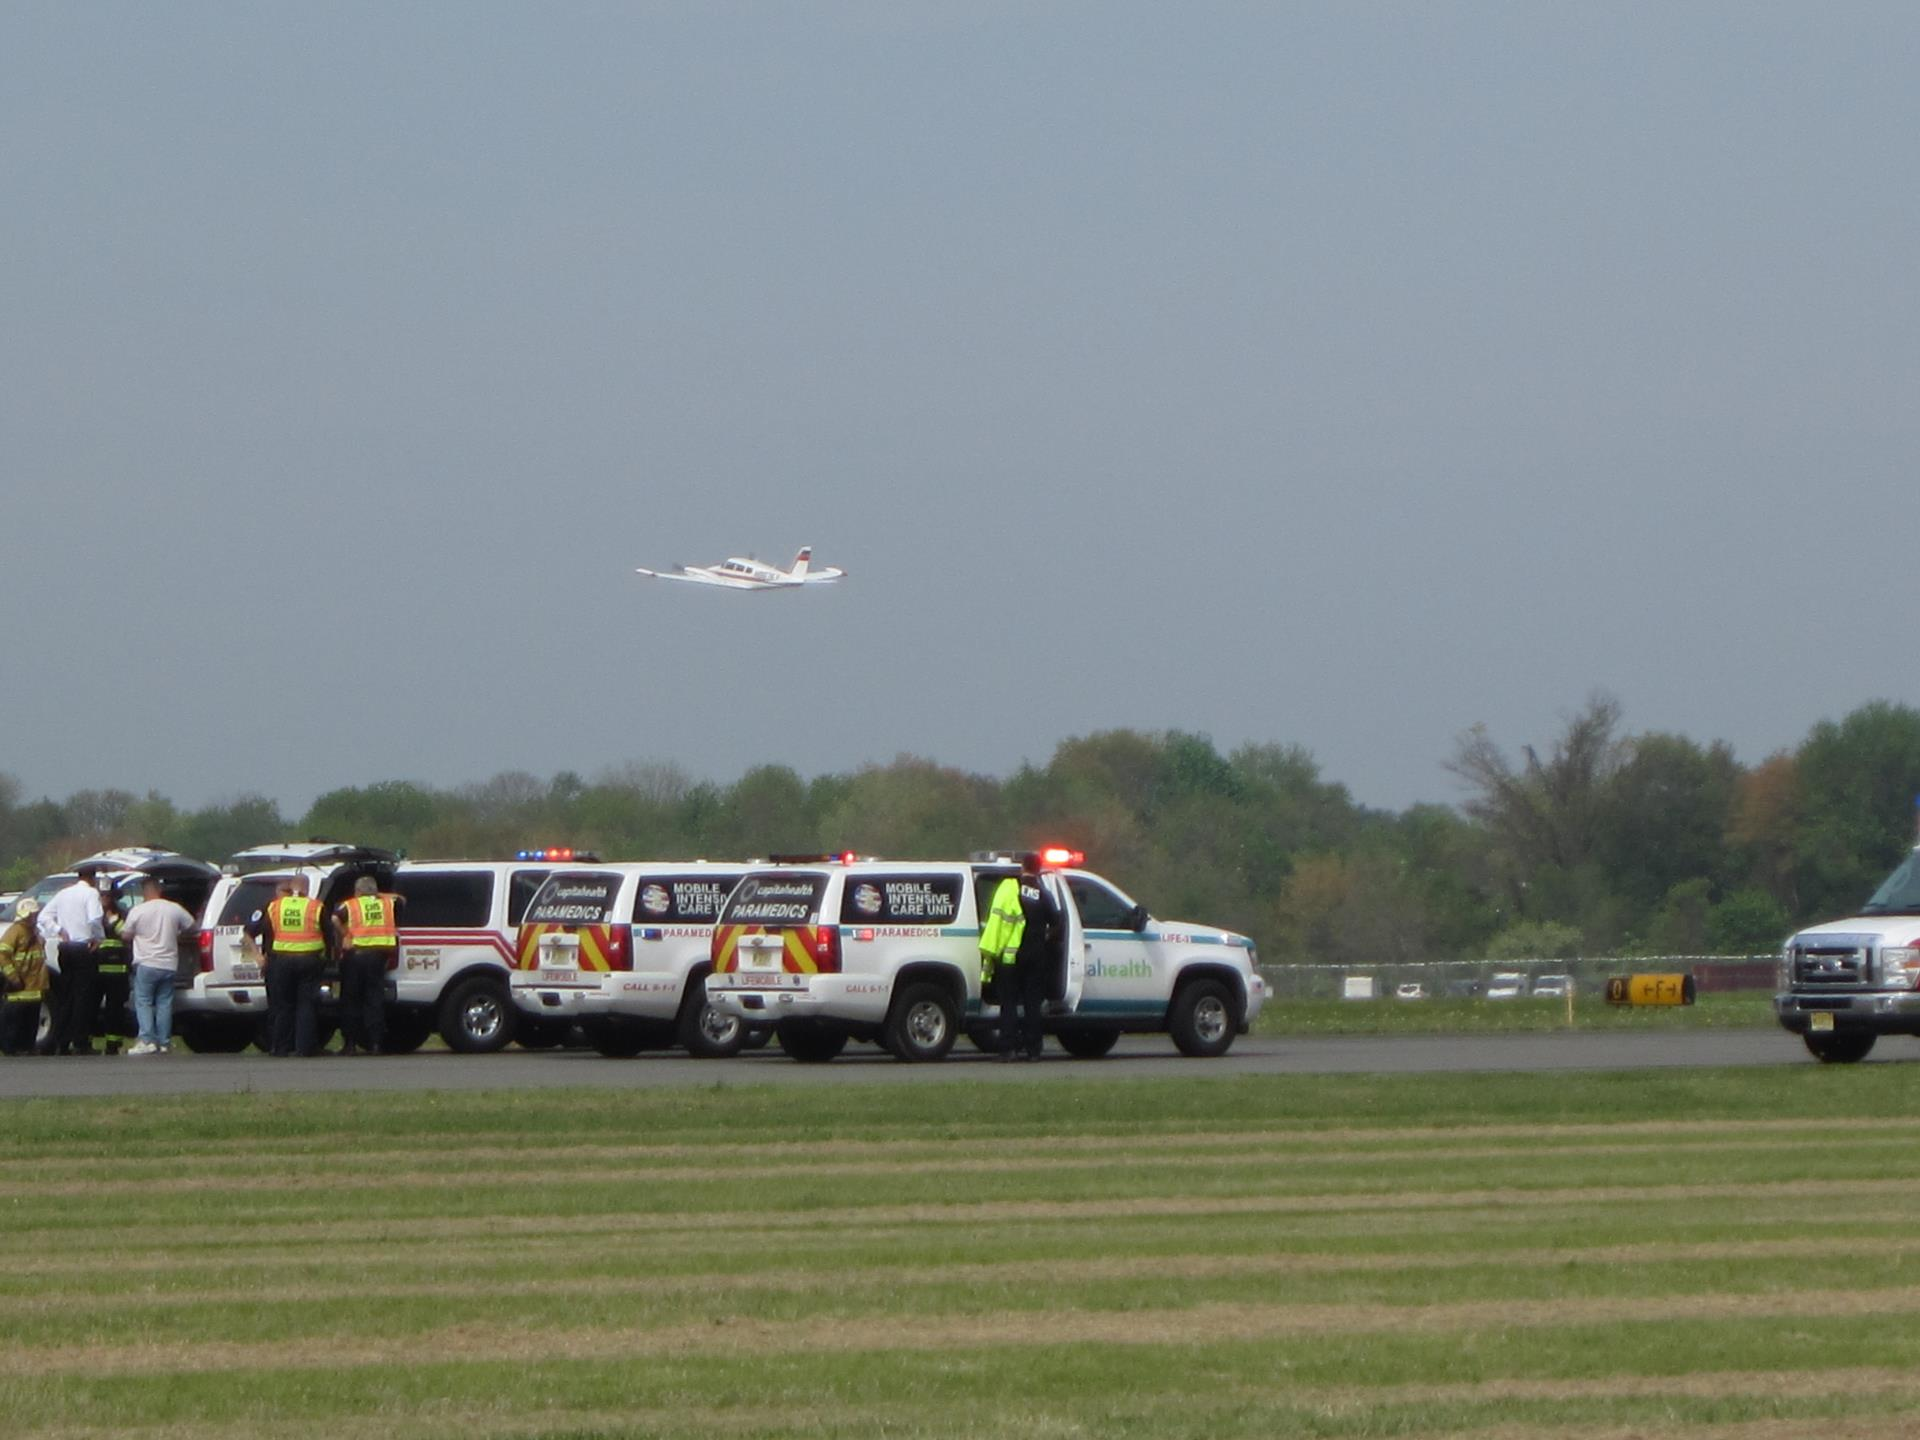 Trenton mercer airport to conduct safety drill county news airport drill xflitez Images